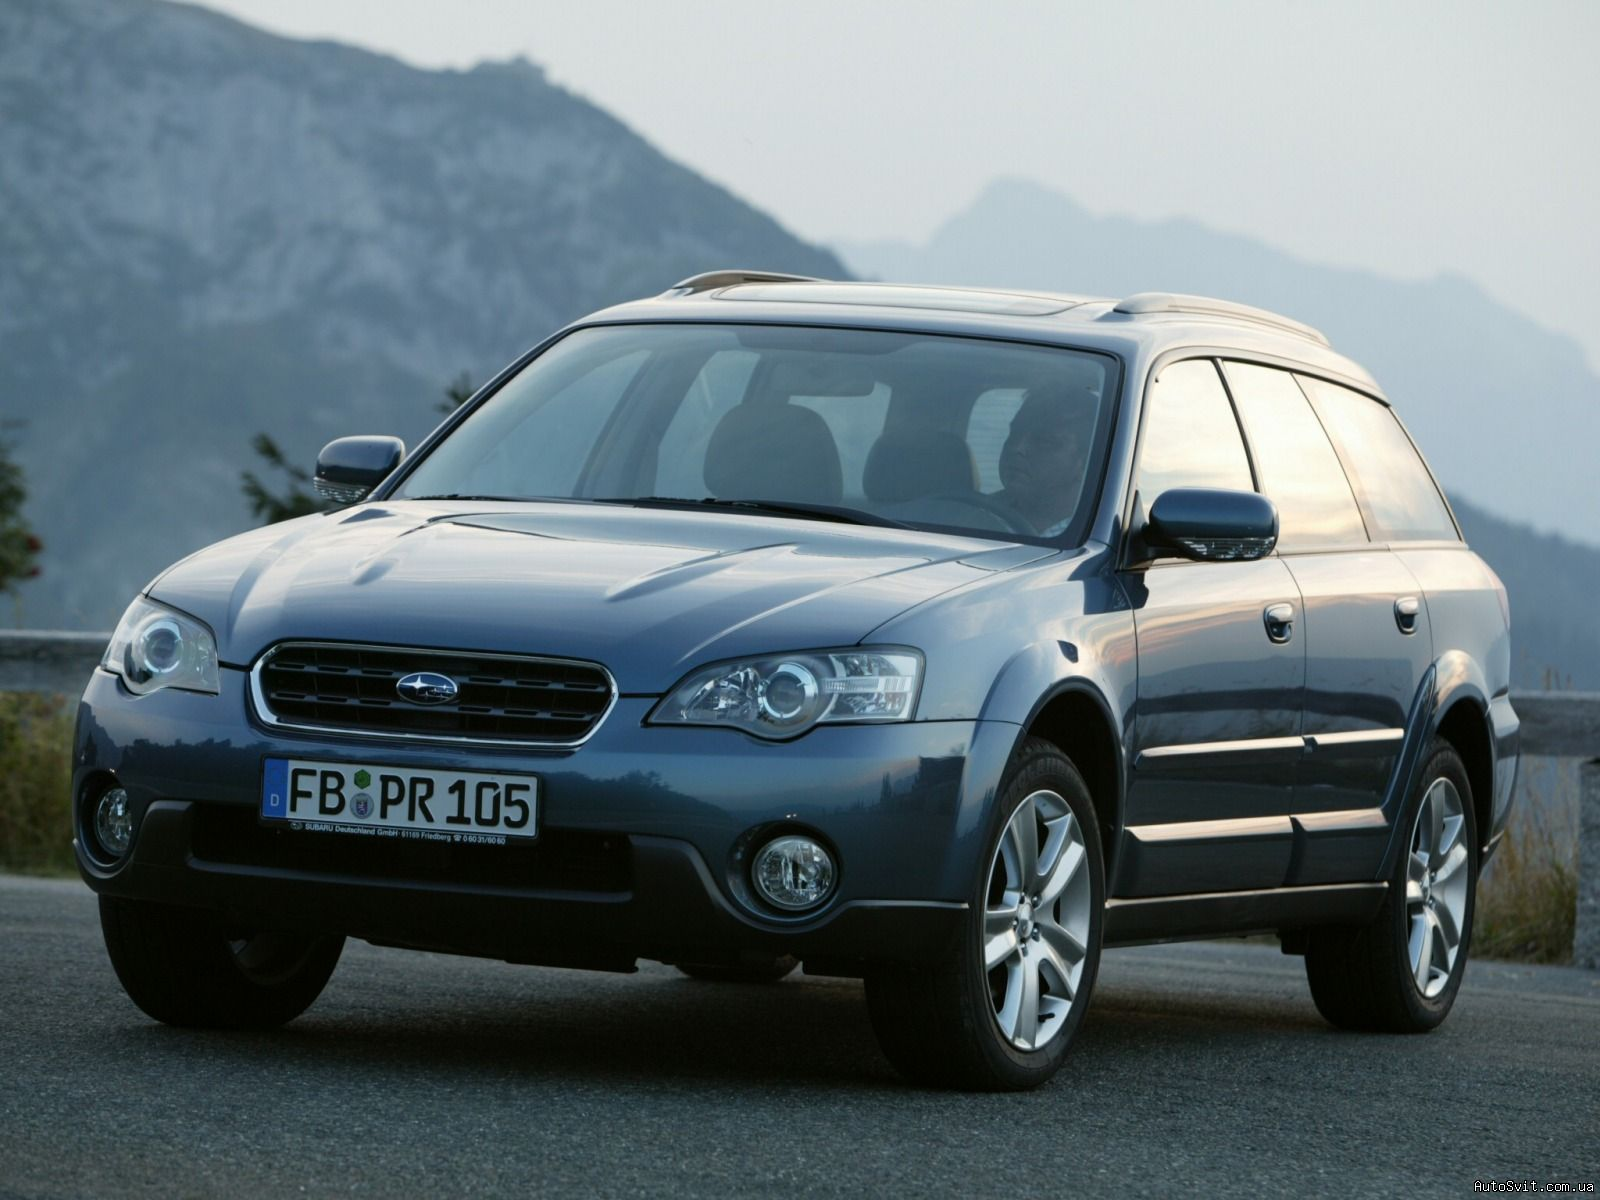 subaru outback - subaru outback 2005 subaru outback 2005 [1600x1200] | FileSize: 178.89 KB | Download. subaru outback ...